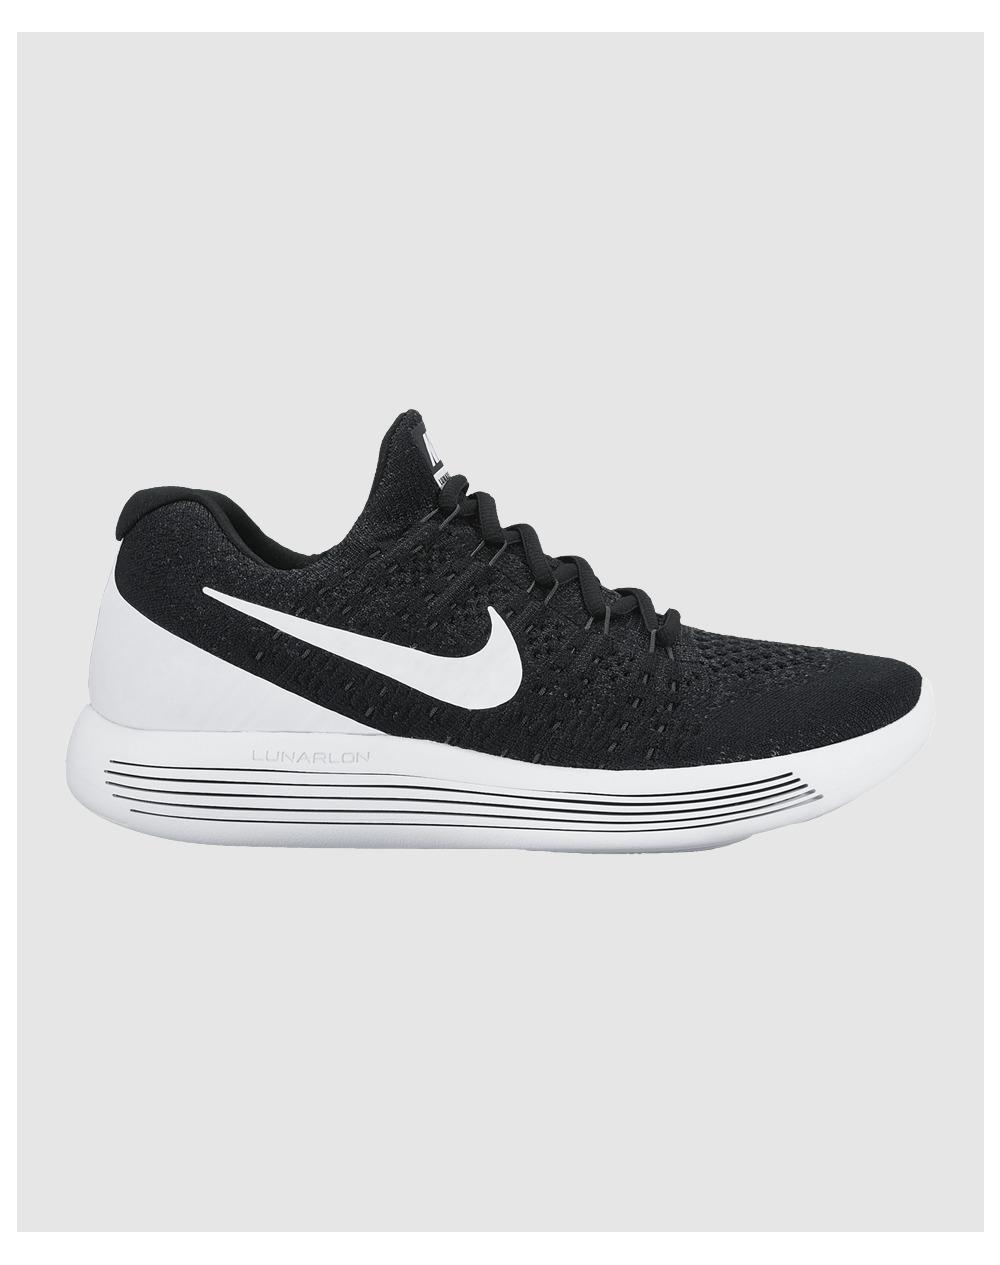 3cab6fa00b3 Nike Lunarepic Low Flyknit 2 Running Shoes in Black for Men - Lyst